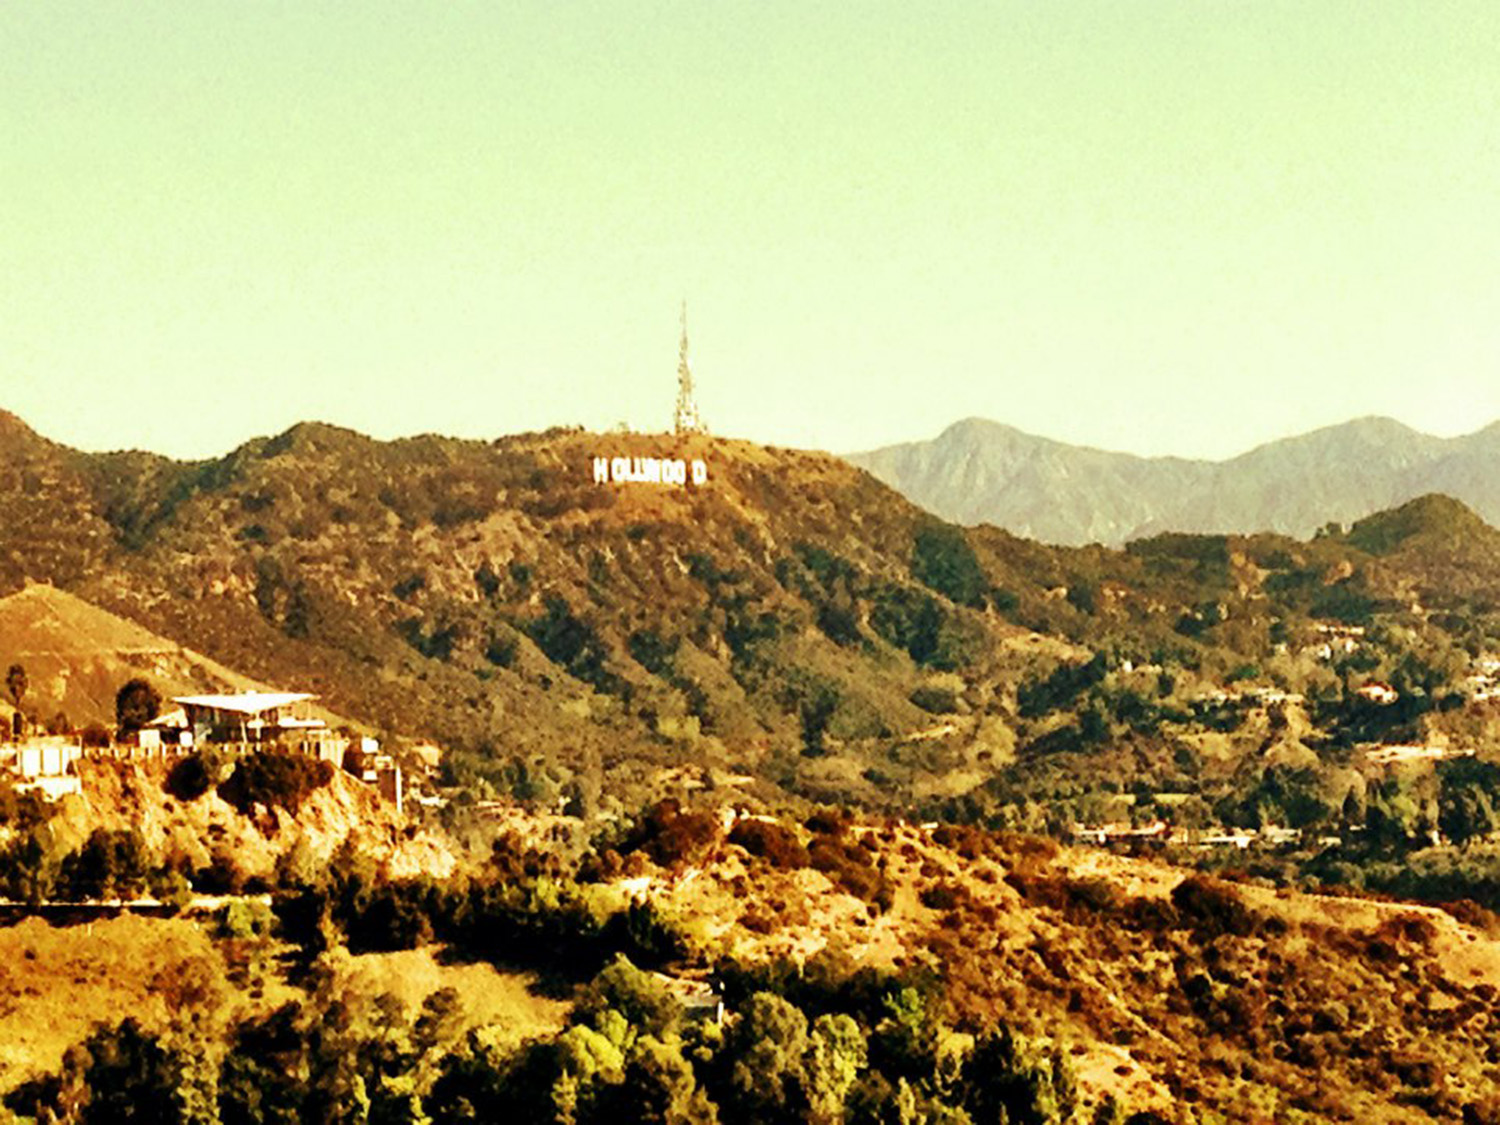 Looking at the iconic Hollywood sign from the Runyon Canyon walk, March 2013